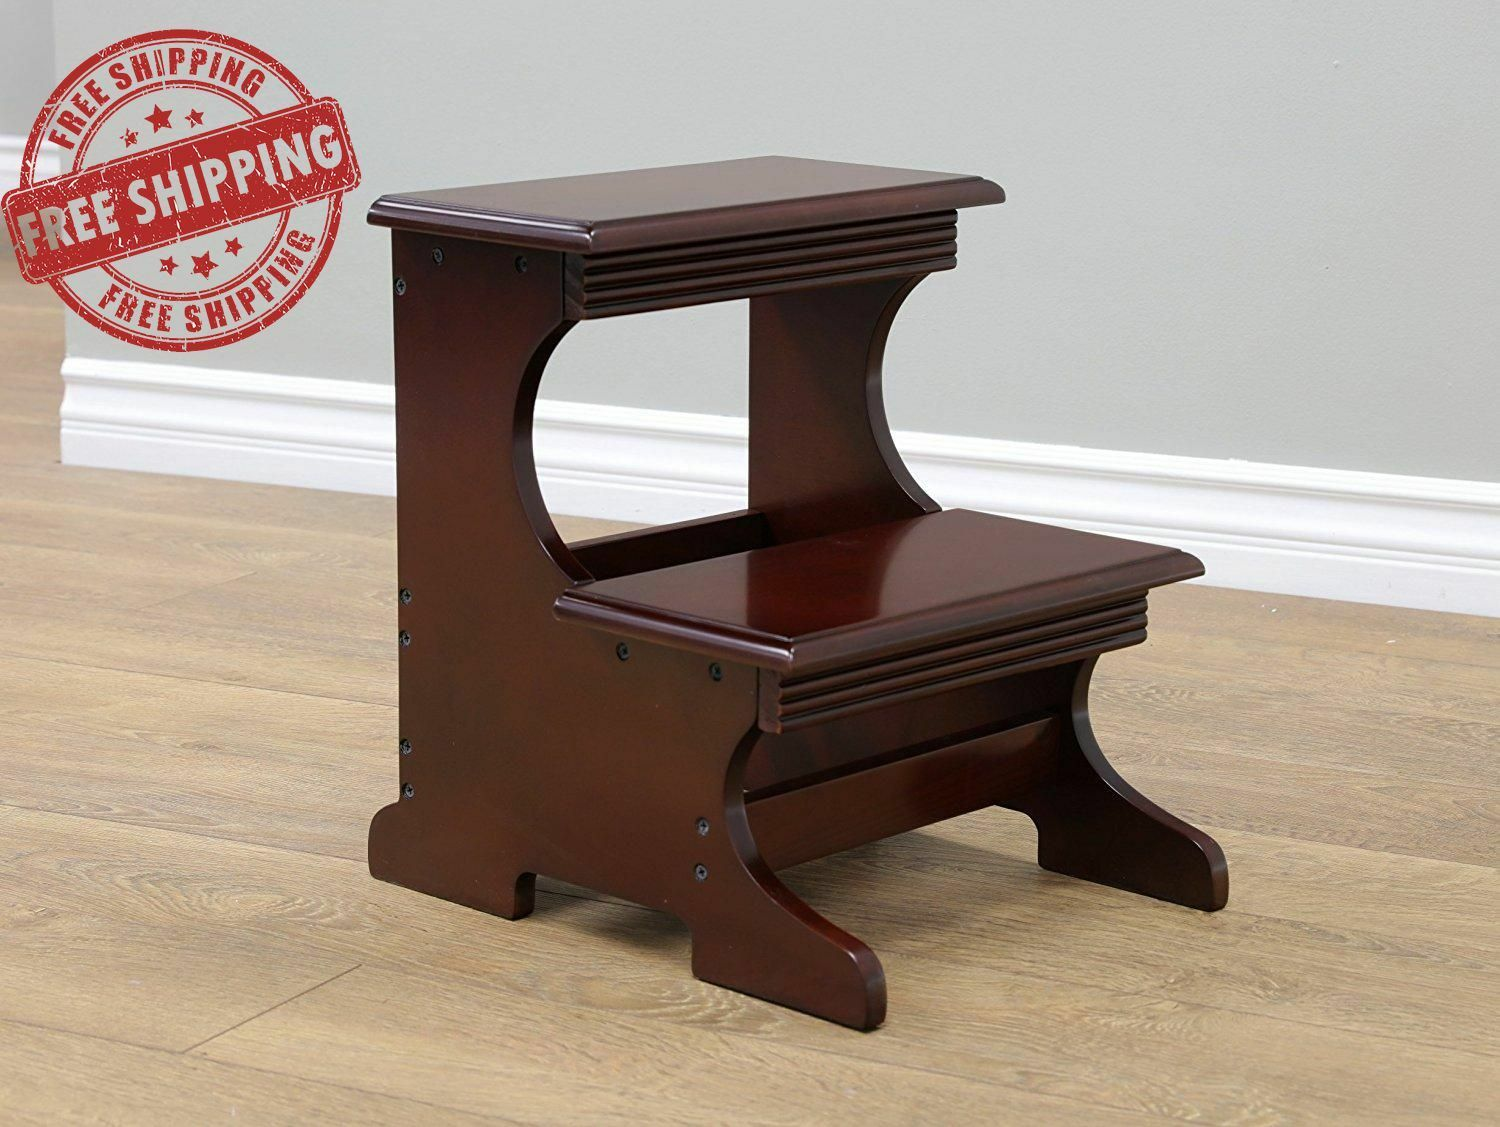 Details About Wooden Step Stool Furniture Decor Home Kitchen Wood Stepping Stools Decorations